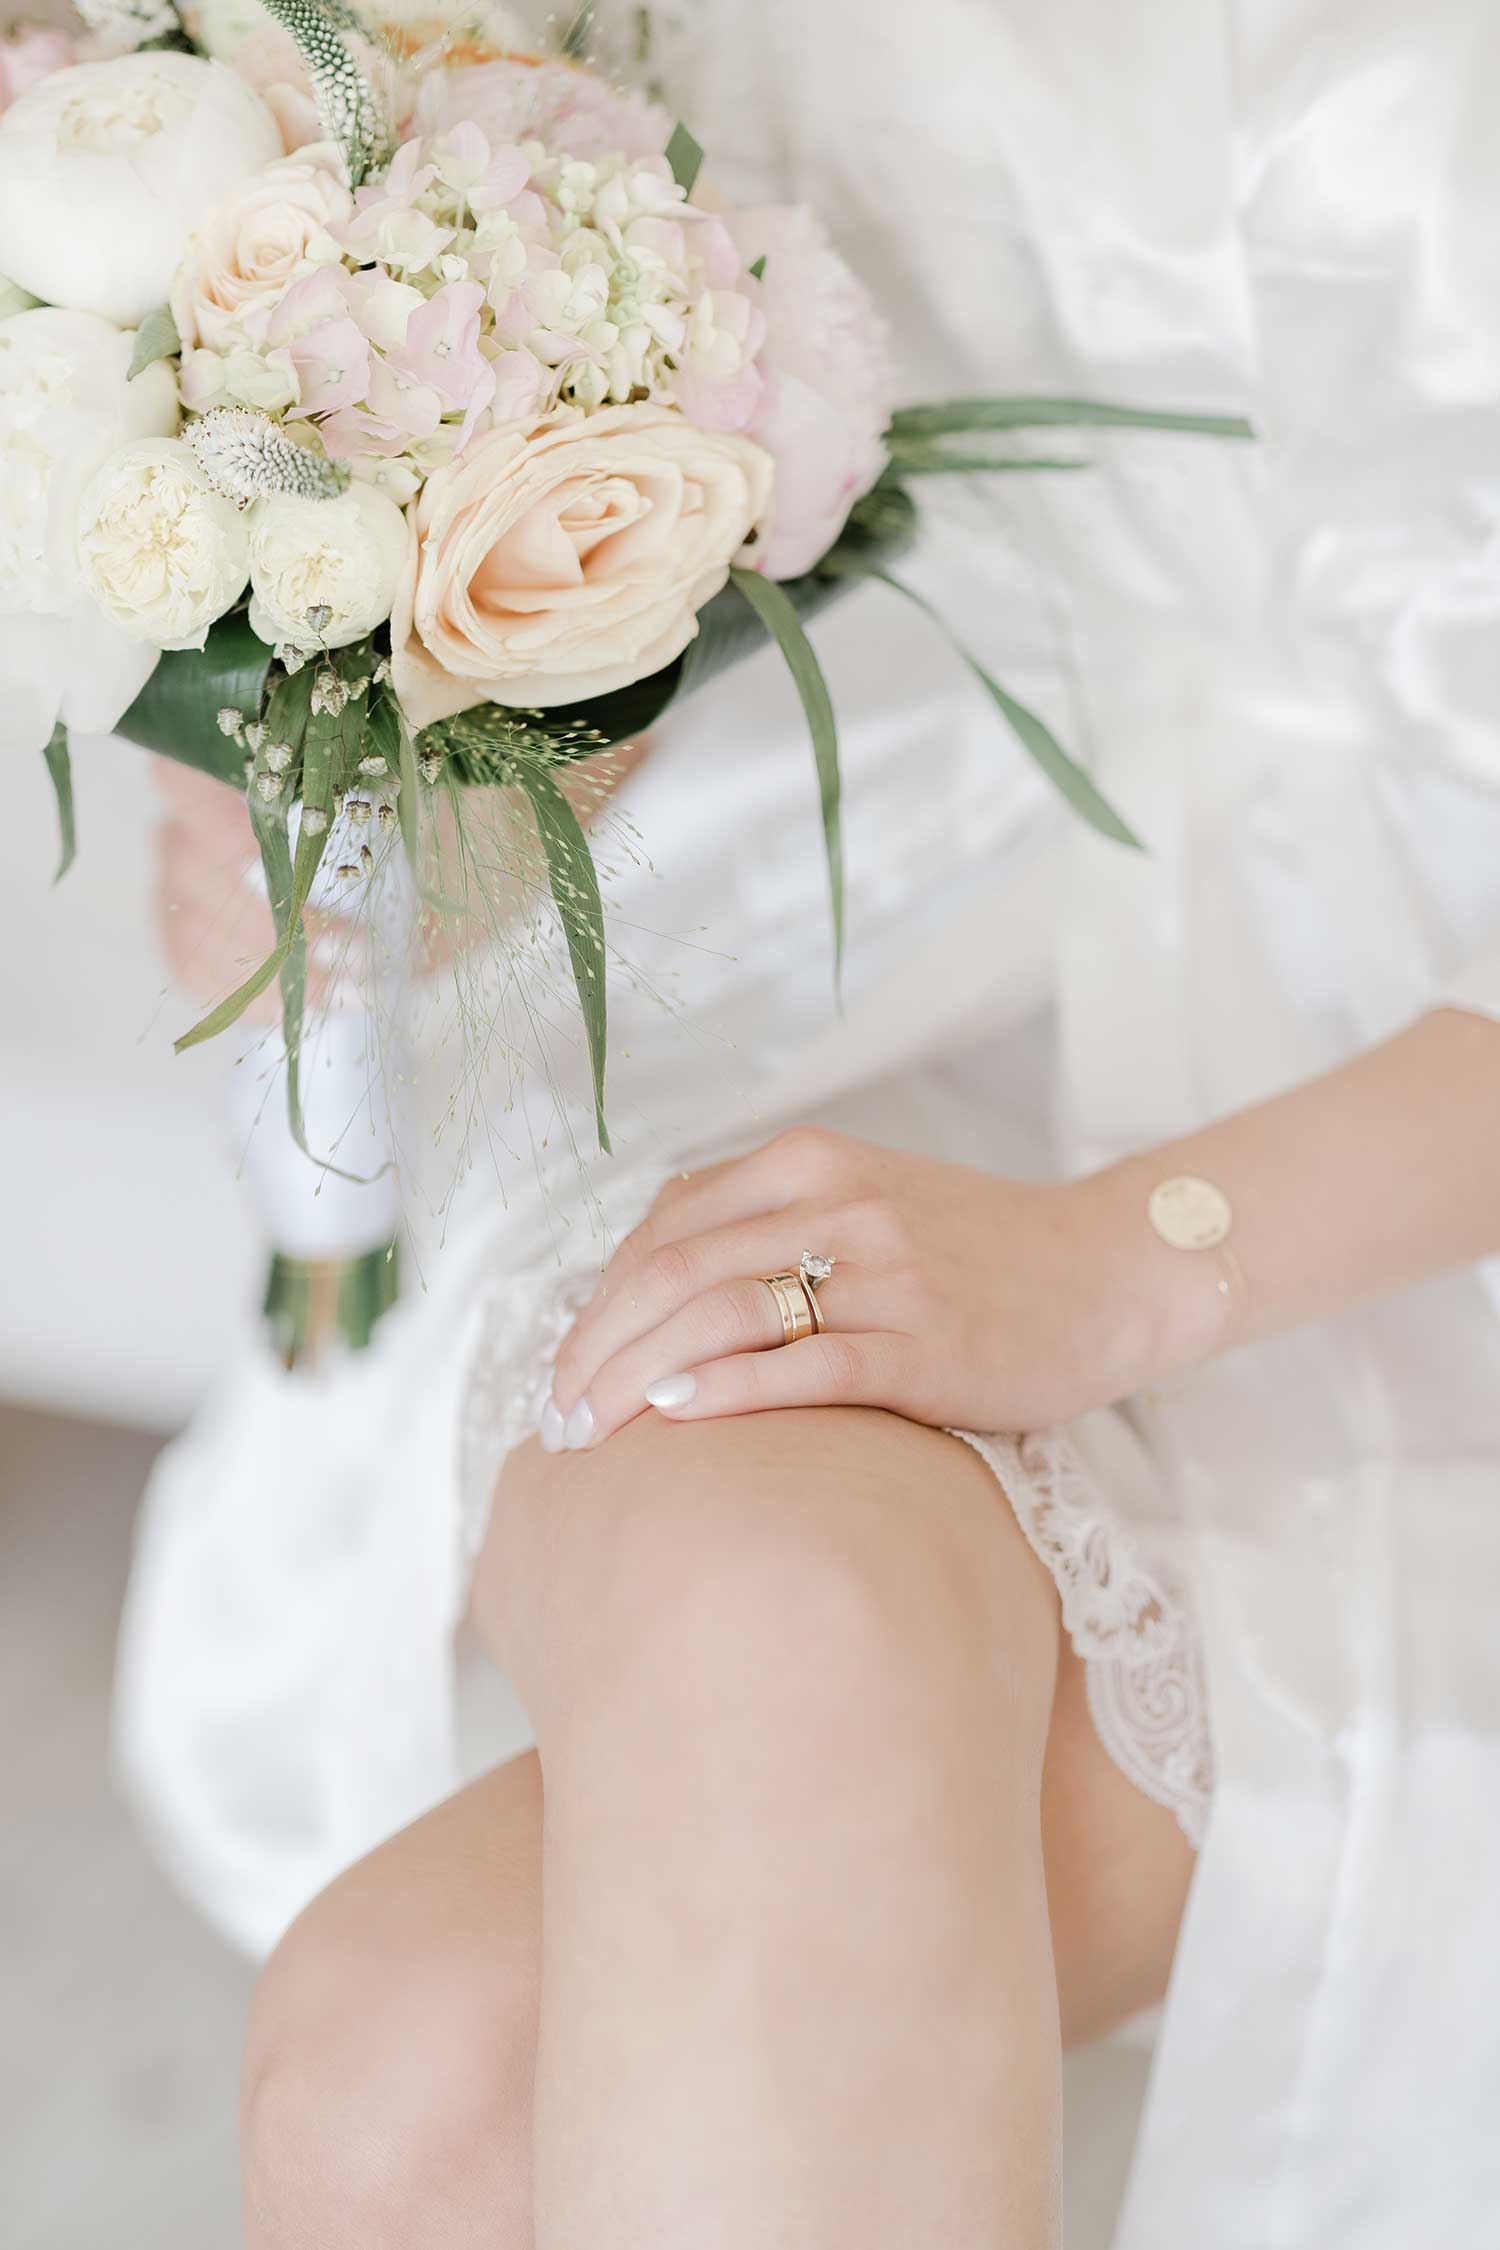 The bouquet and the ring